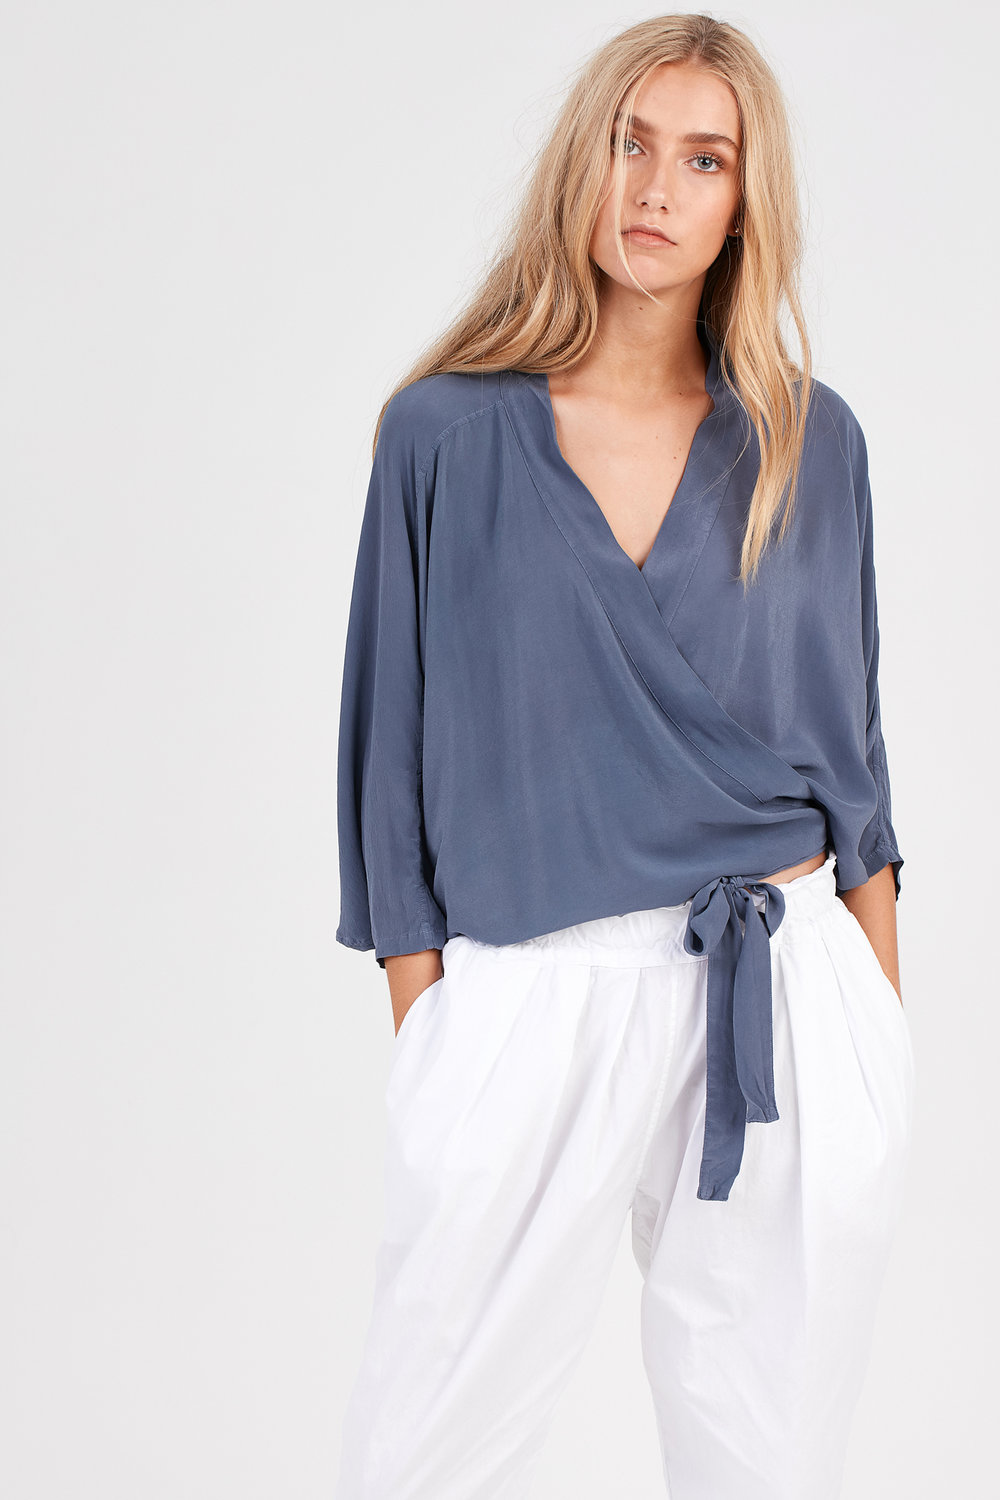 FLUTED TOP CHALK BLUE. COCOON PLEATED SLACK BLANC